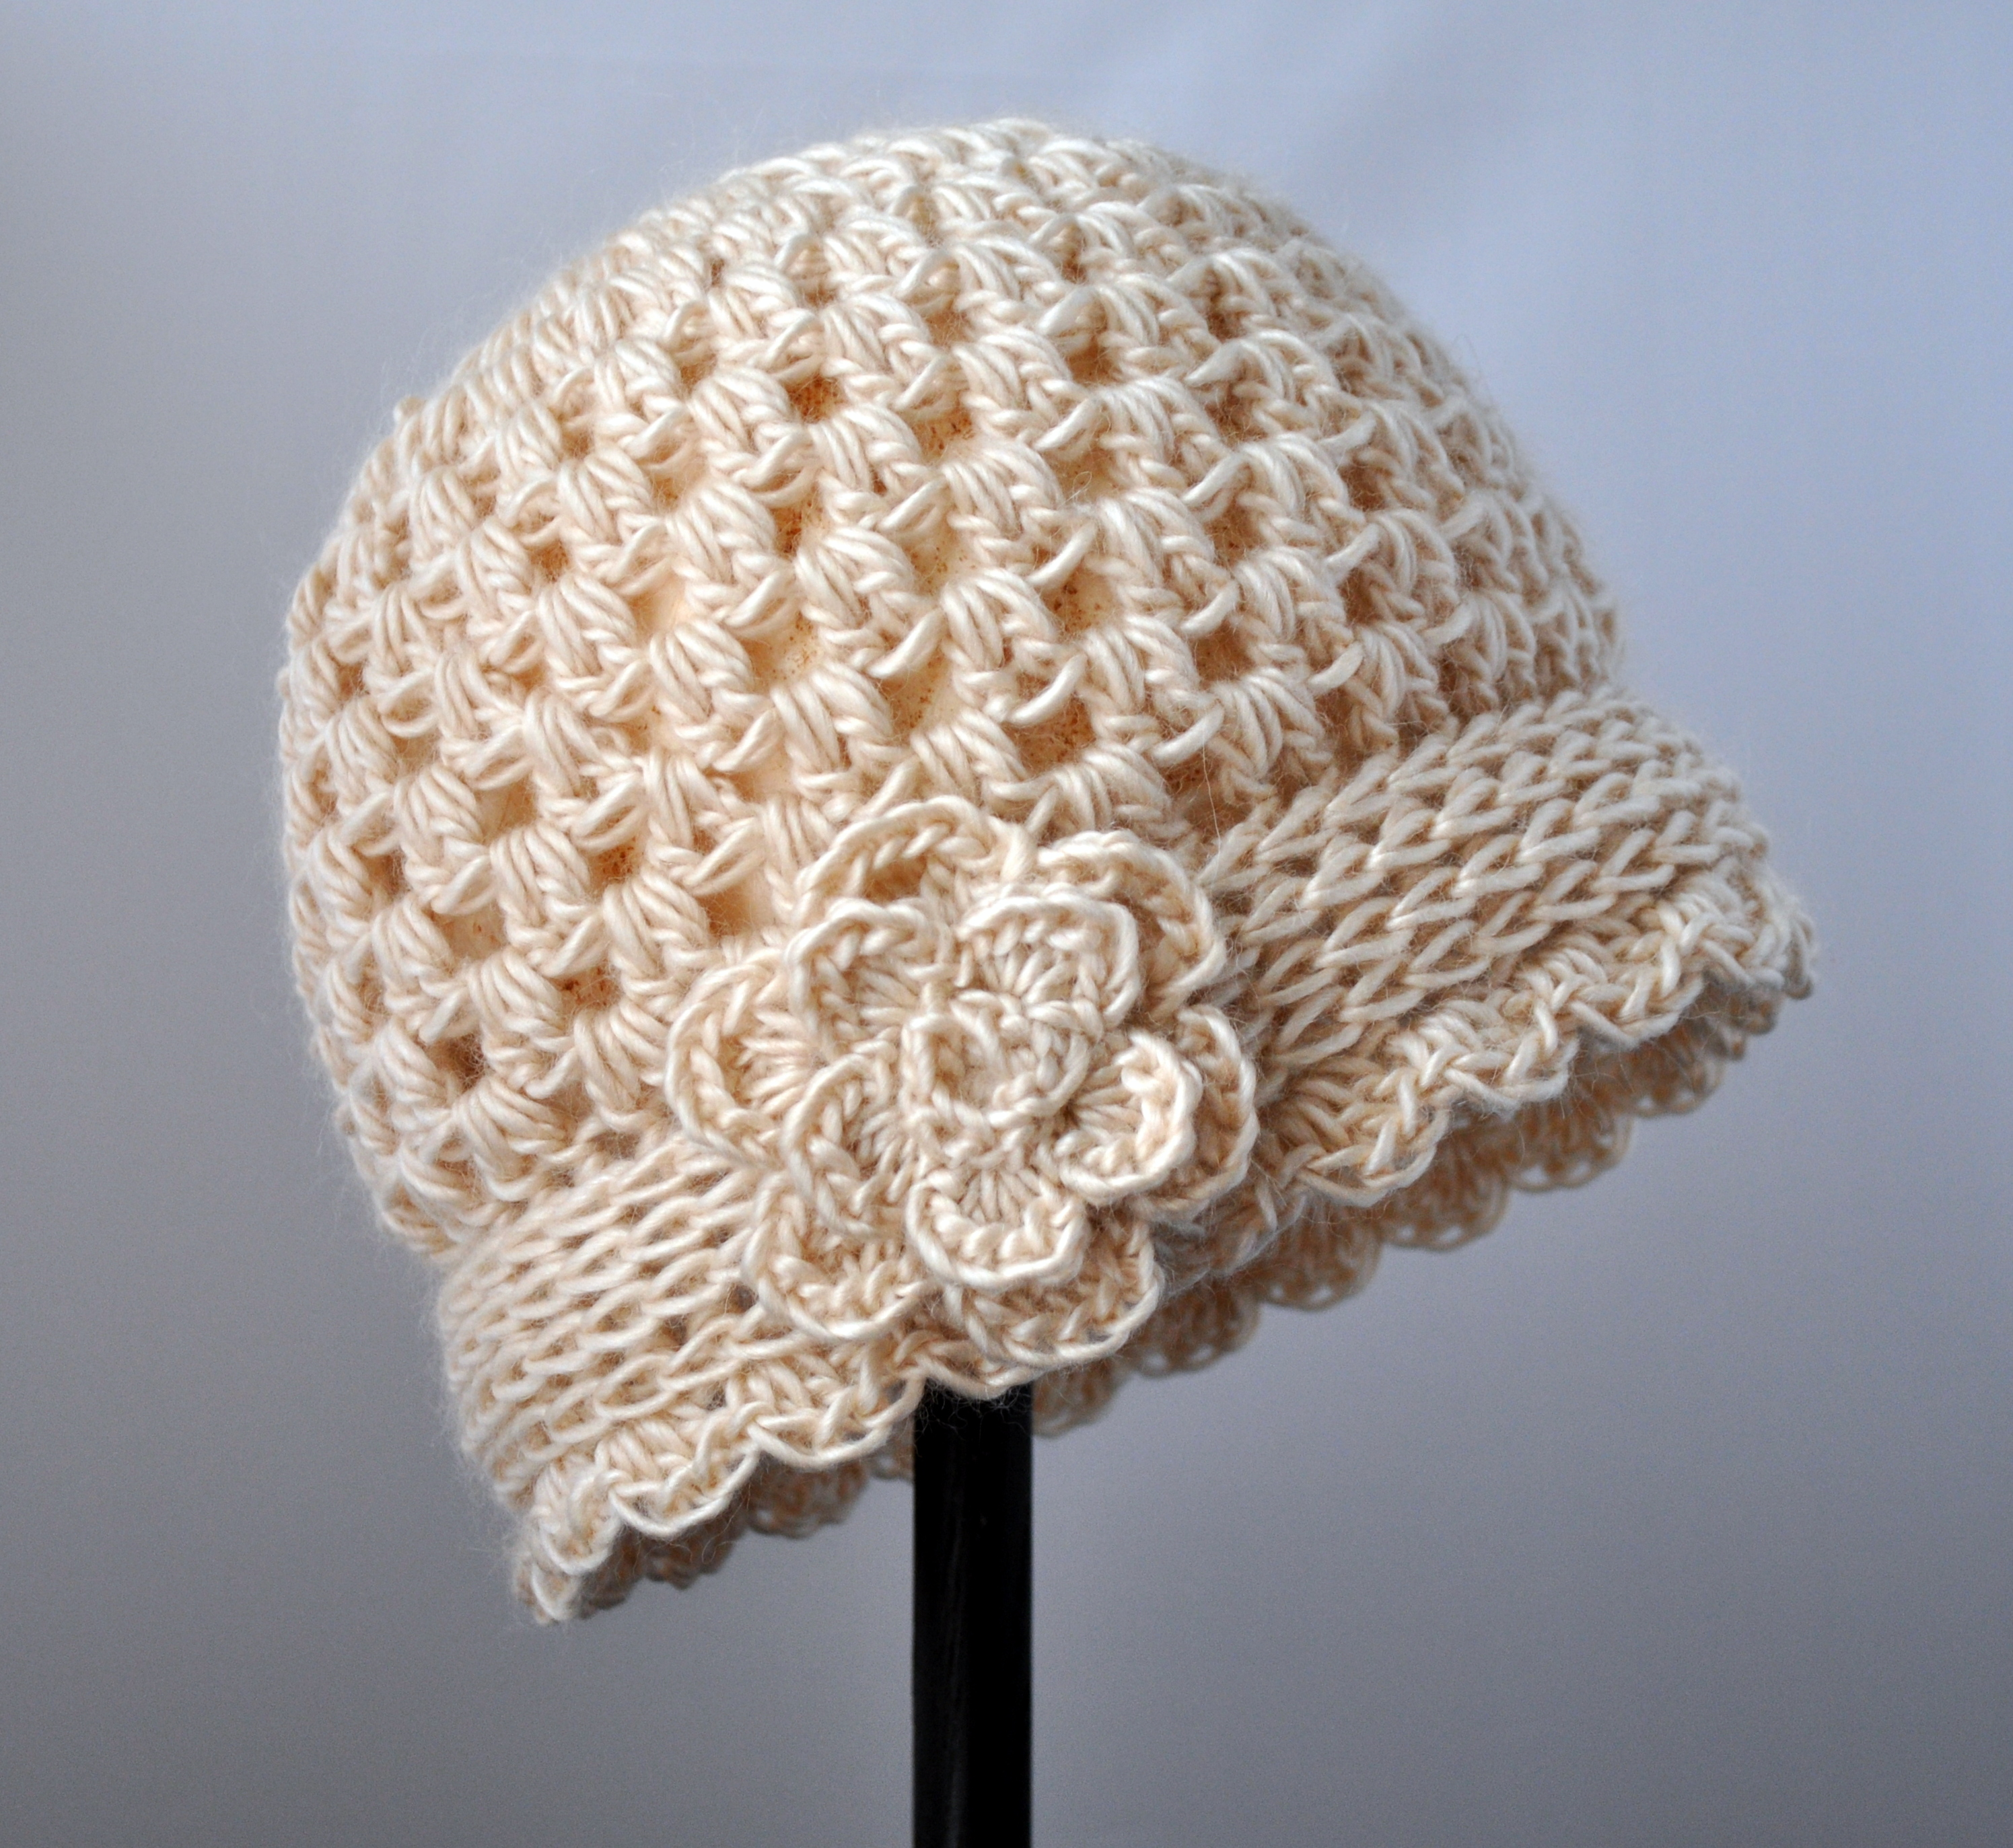 Crocheting A Hat : Crochet Vintage Flowered Cloche Pattern Classy Crochet